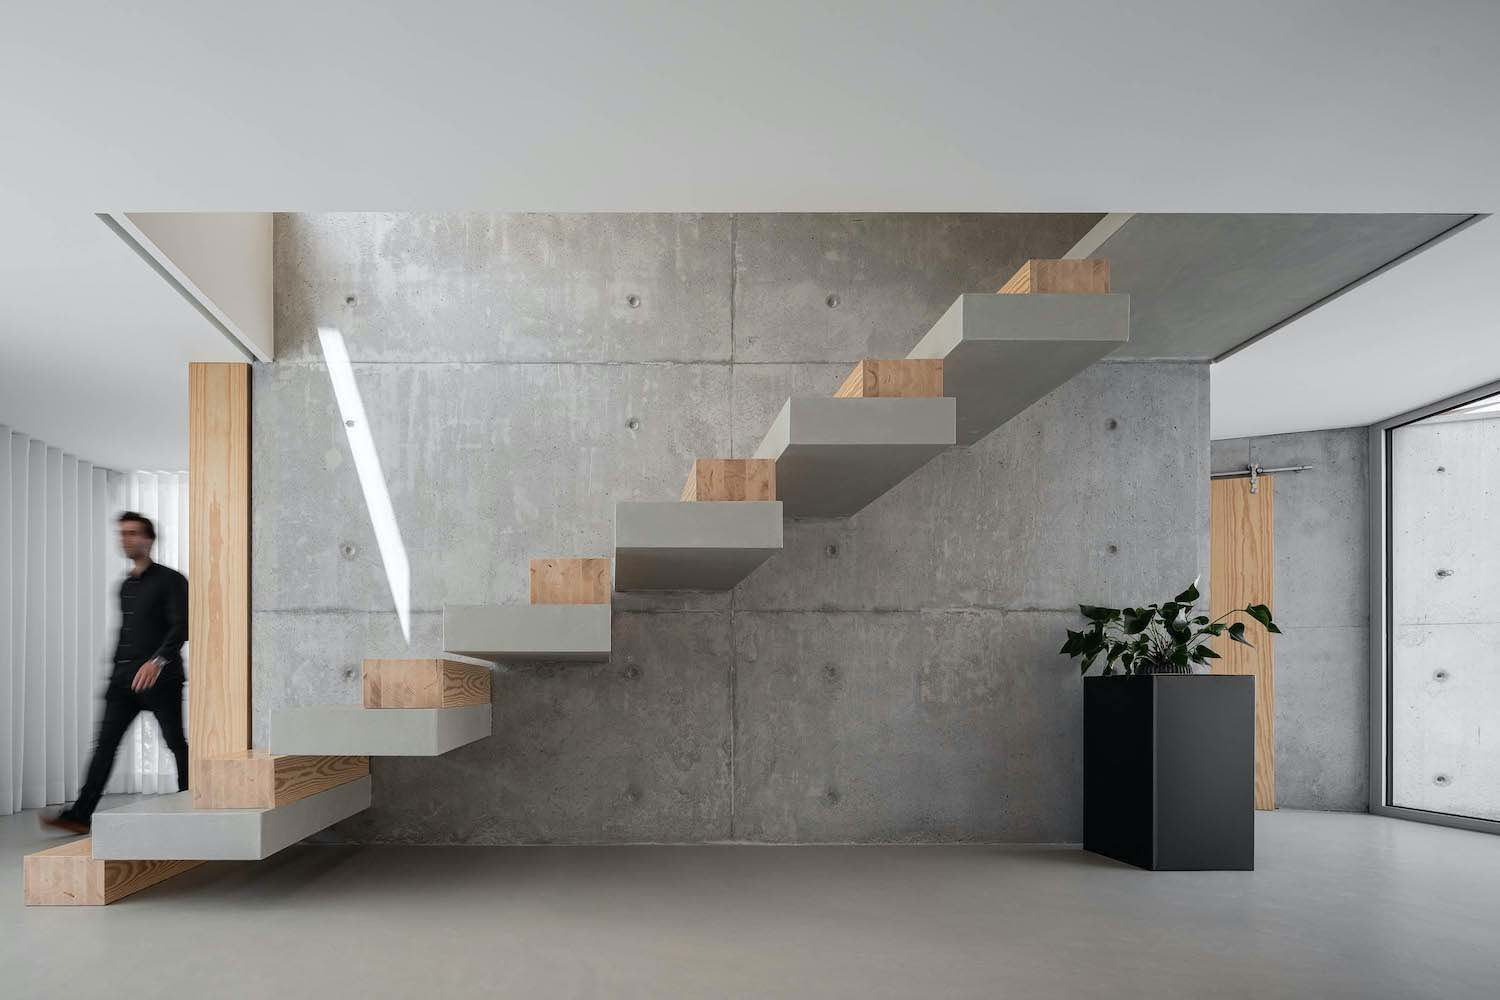 staircase made of concrete and wood